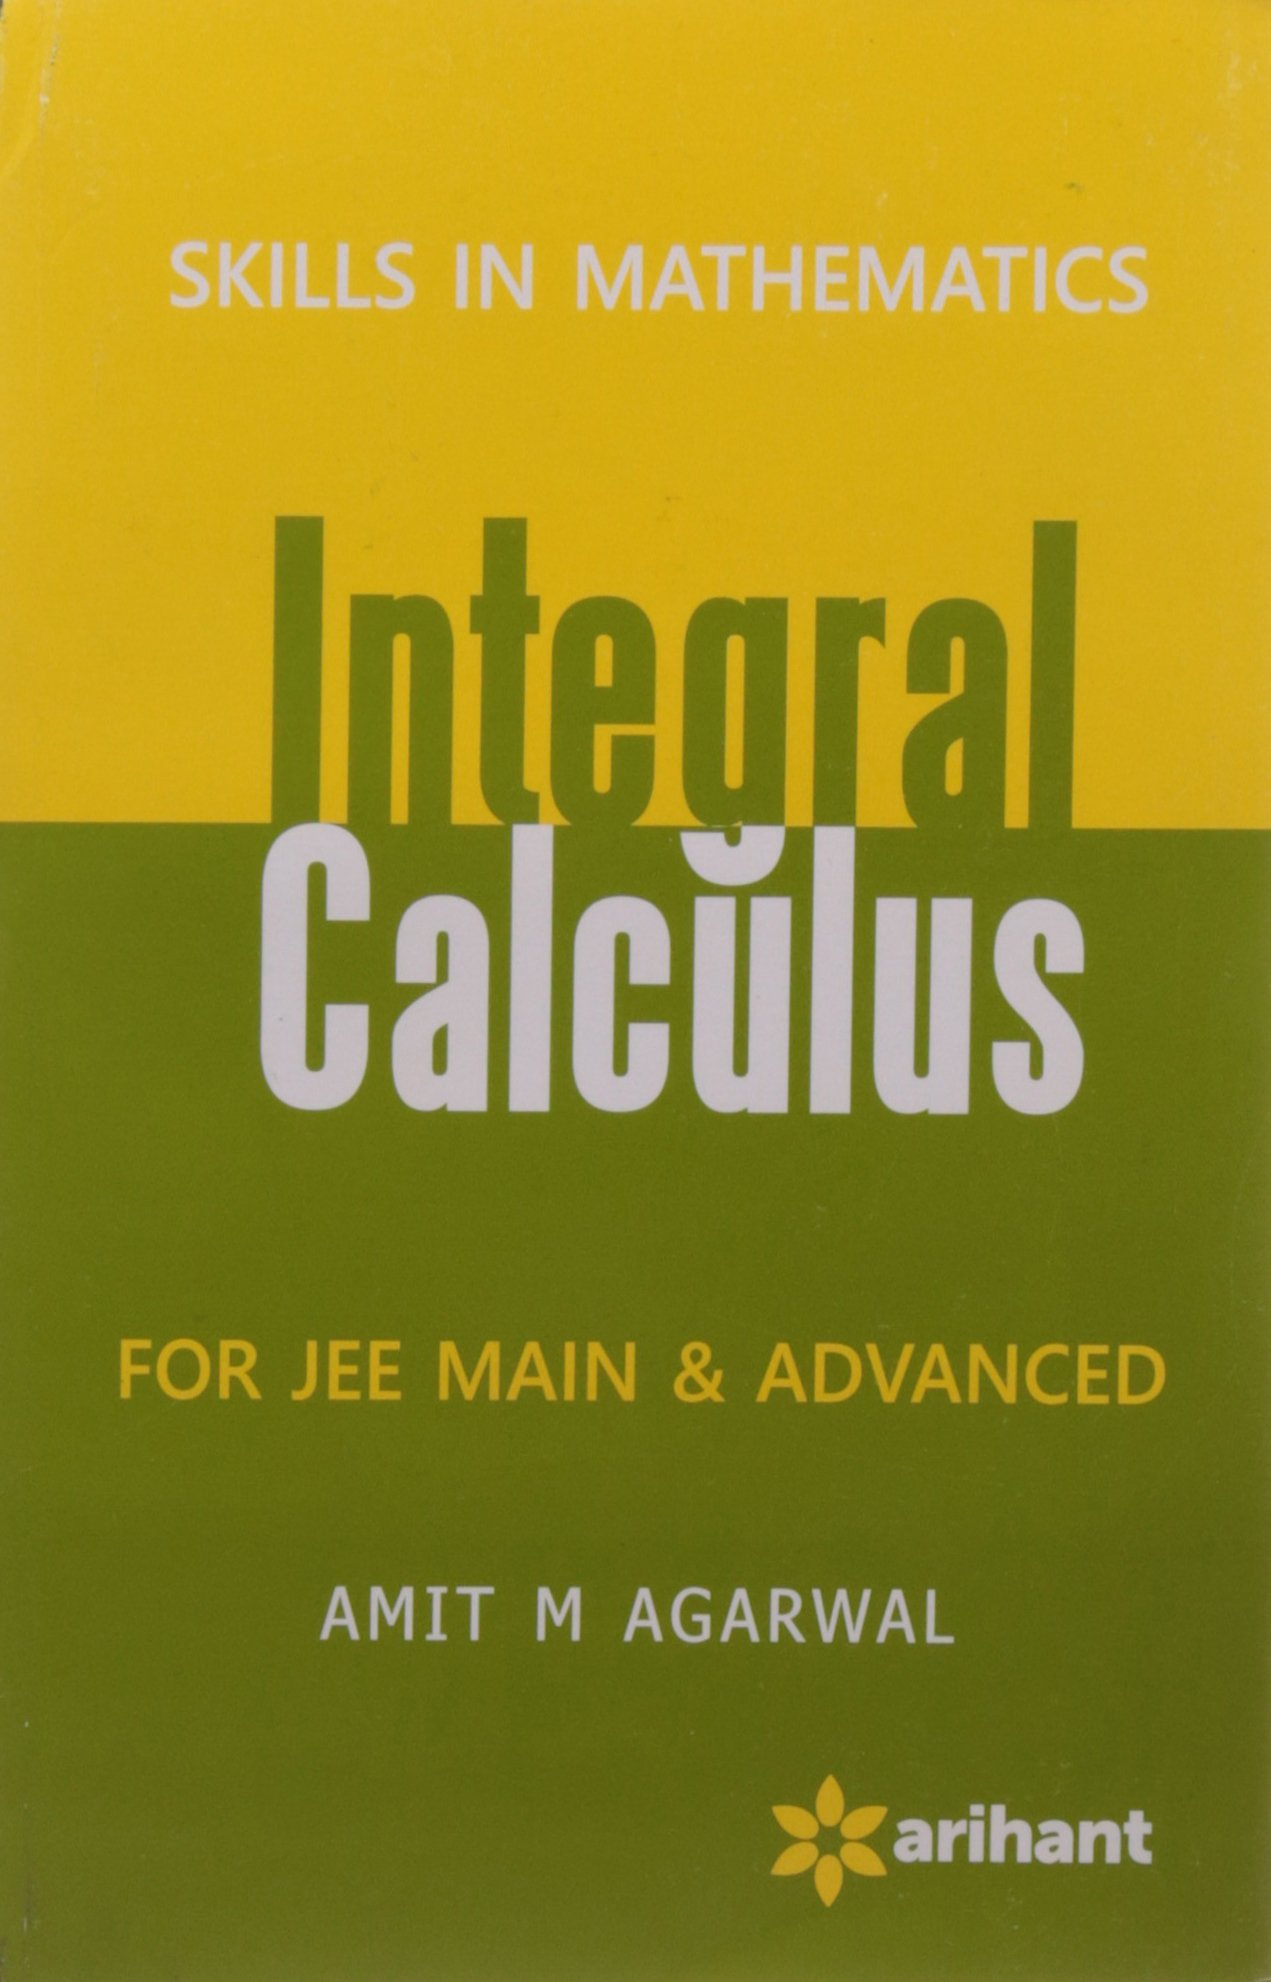 Buy Skills In Mathematics - INTEGRAL CALCULUS for JEE Main ...